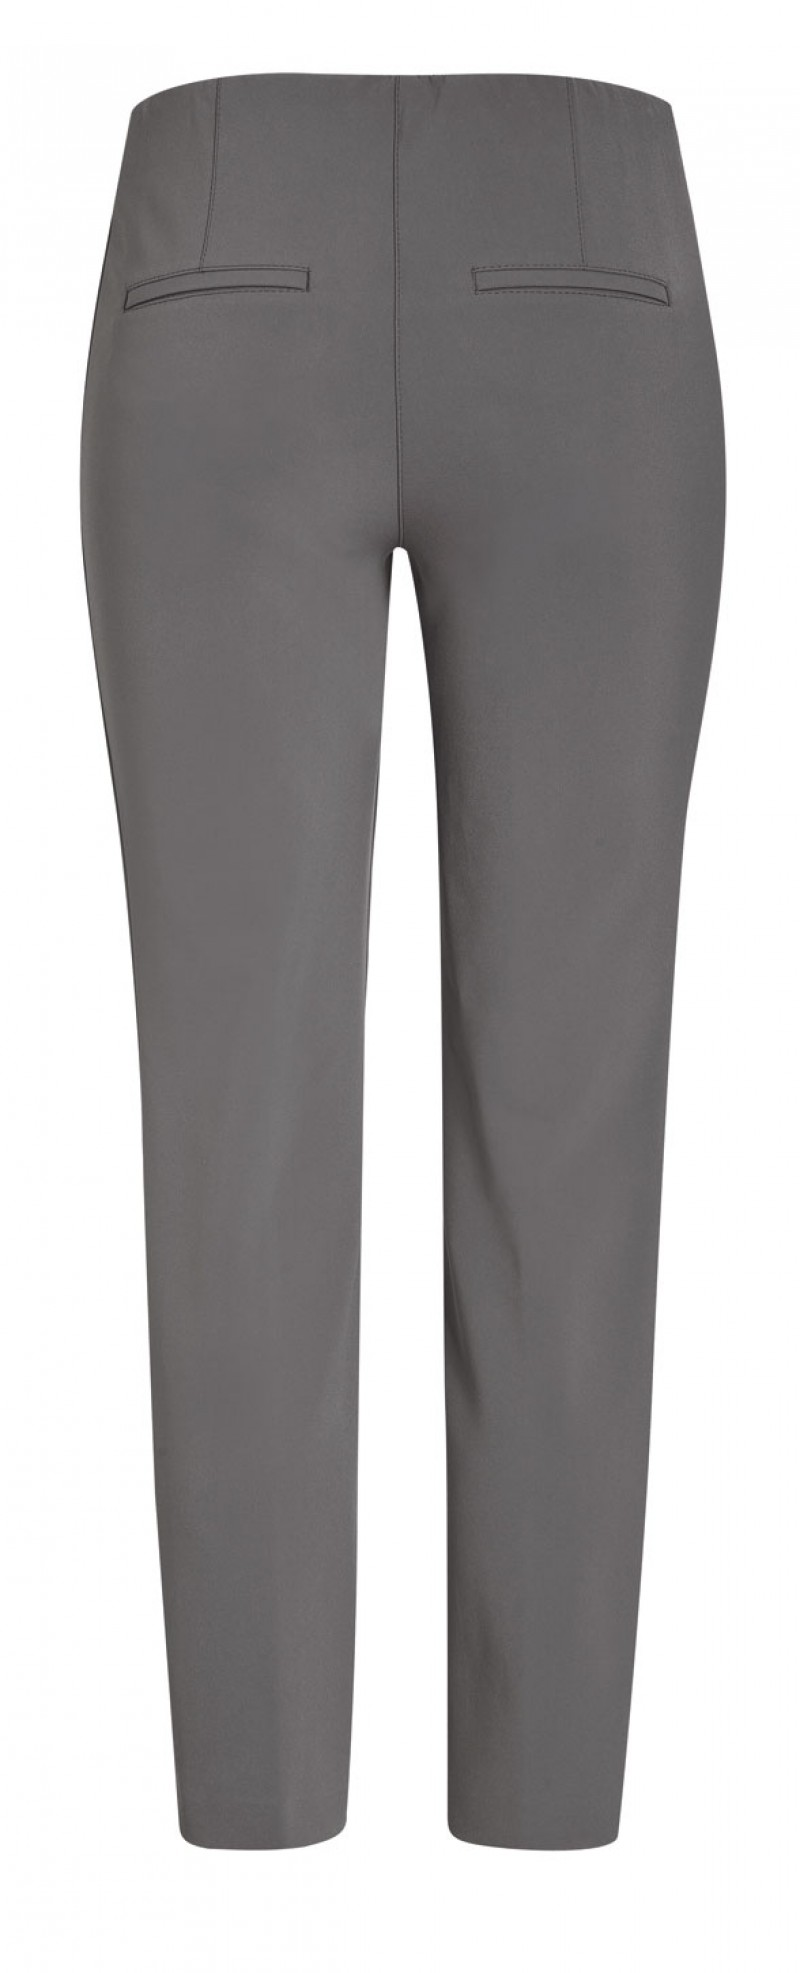 Mac ANNA Hose - supersofte Jerseyqualität - Dark Grey